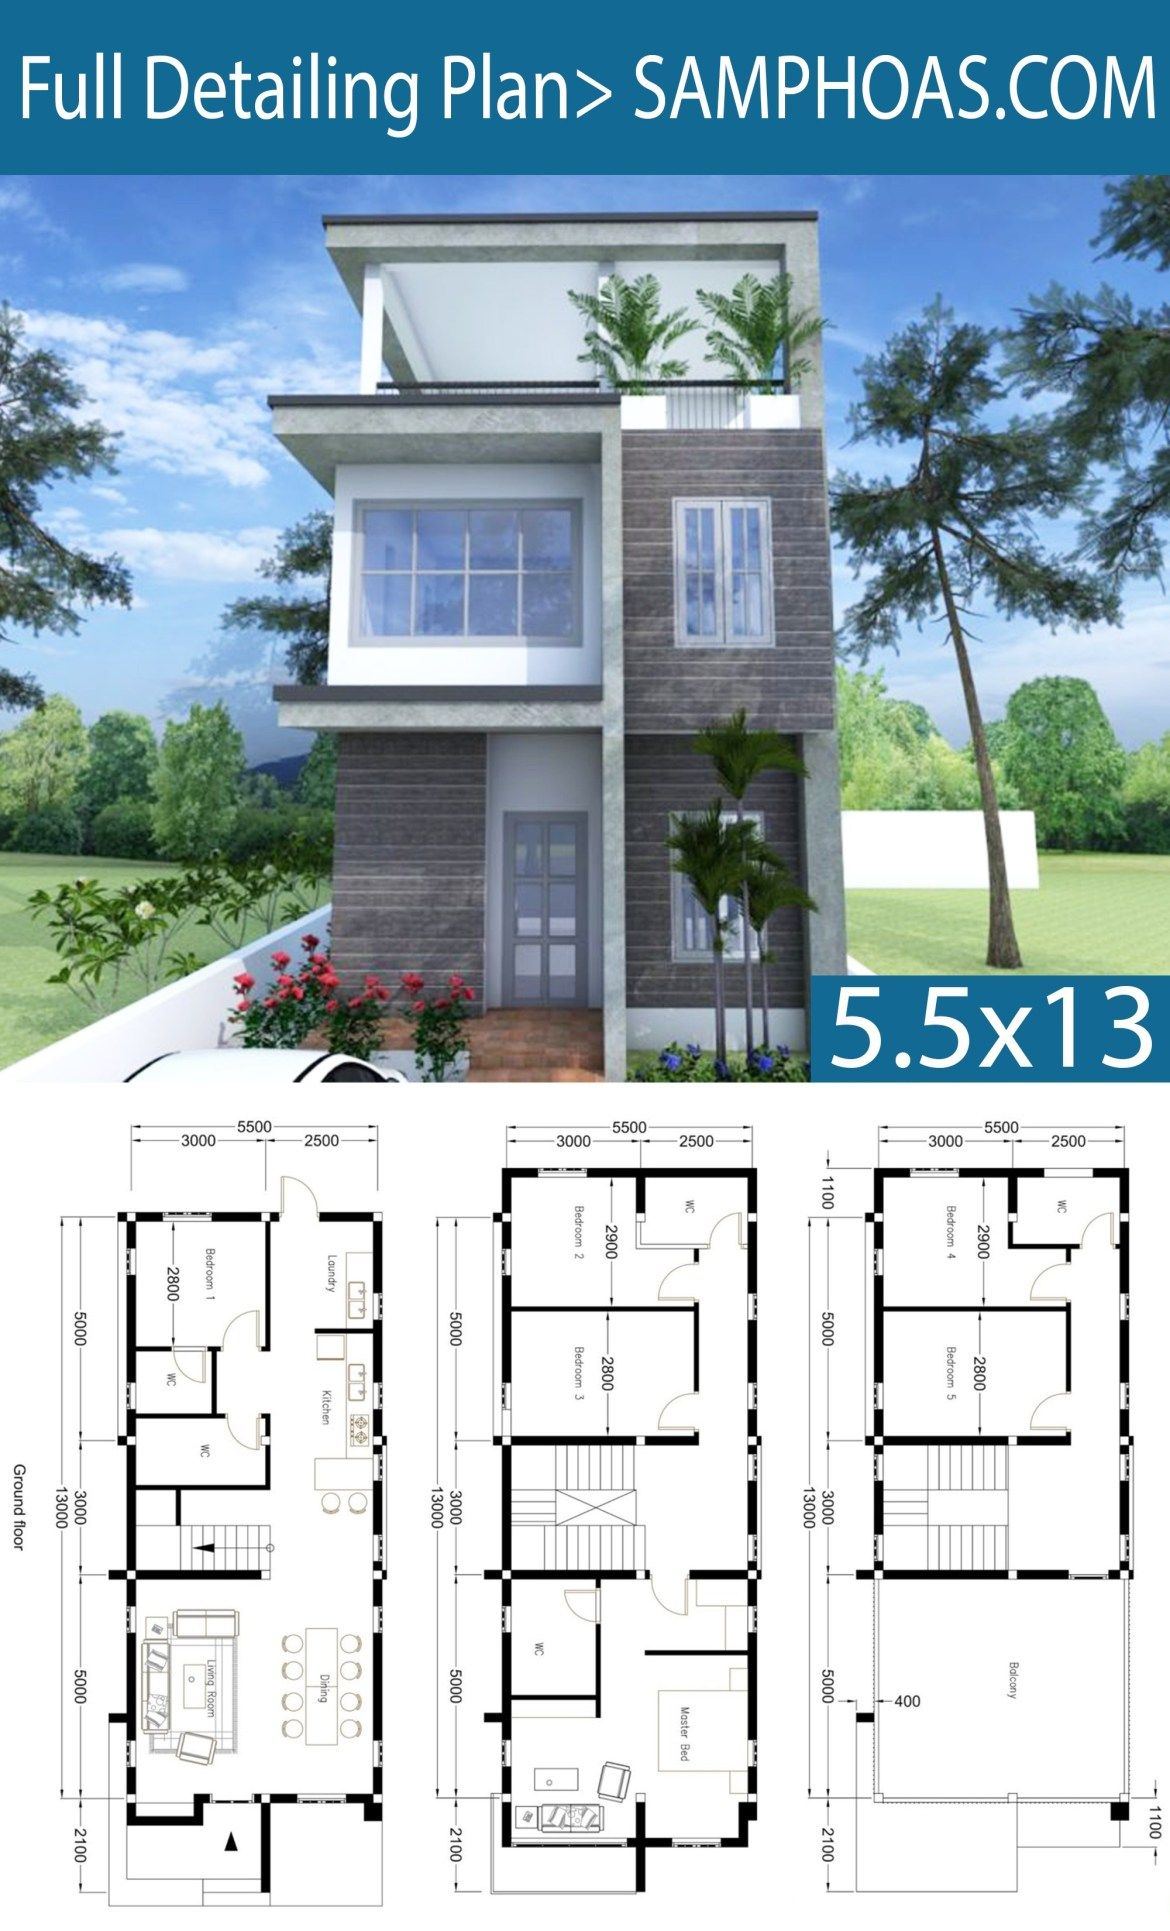 Modern Home Plan 5 5x13m With 6 Bedroom Sims House Design Architectural House Plans Luxury Modern Homes